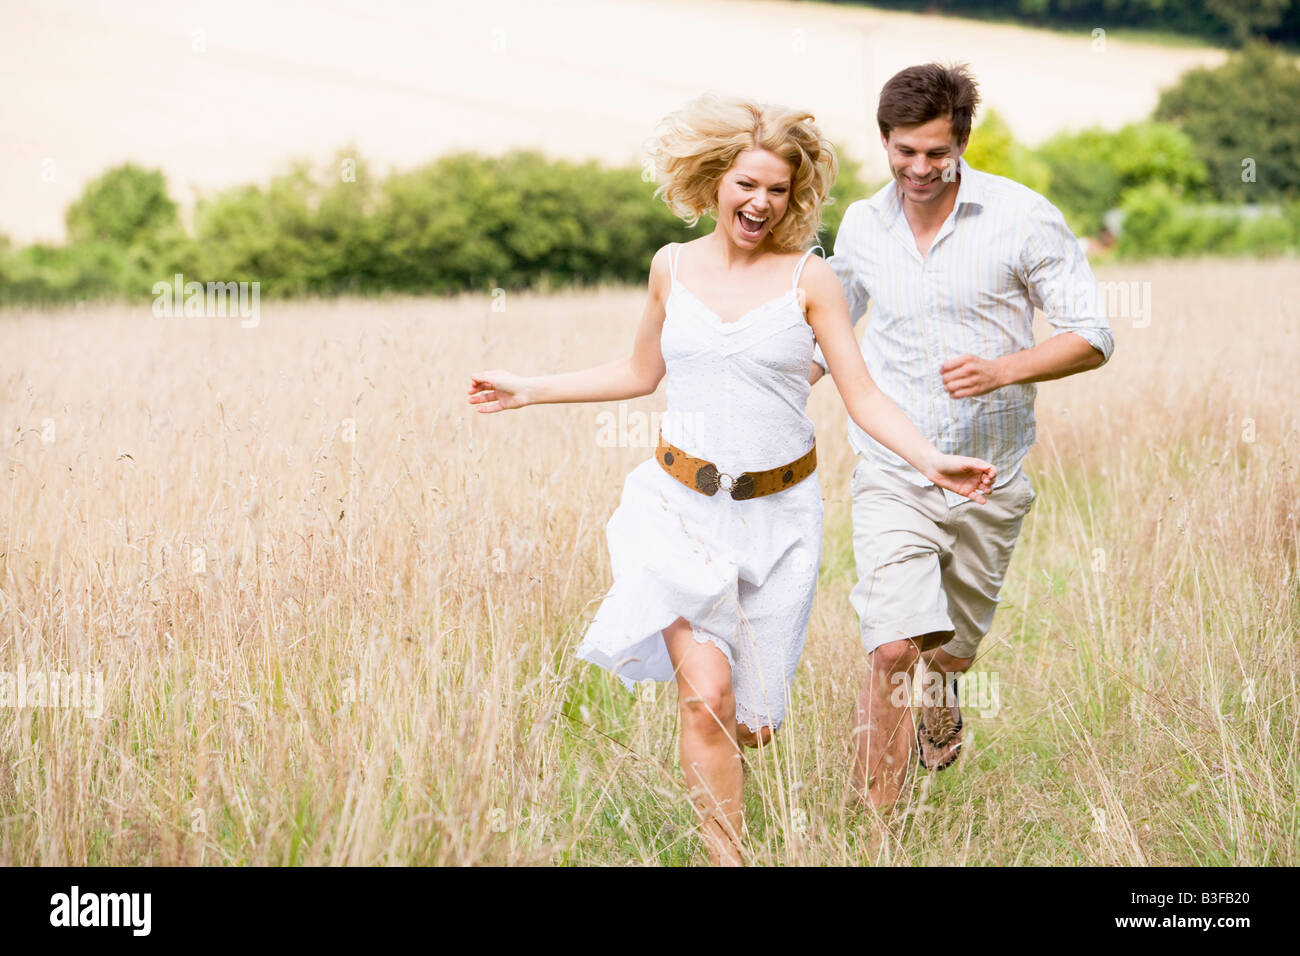 Couple running outdoors smiling - Stock Image